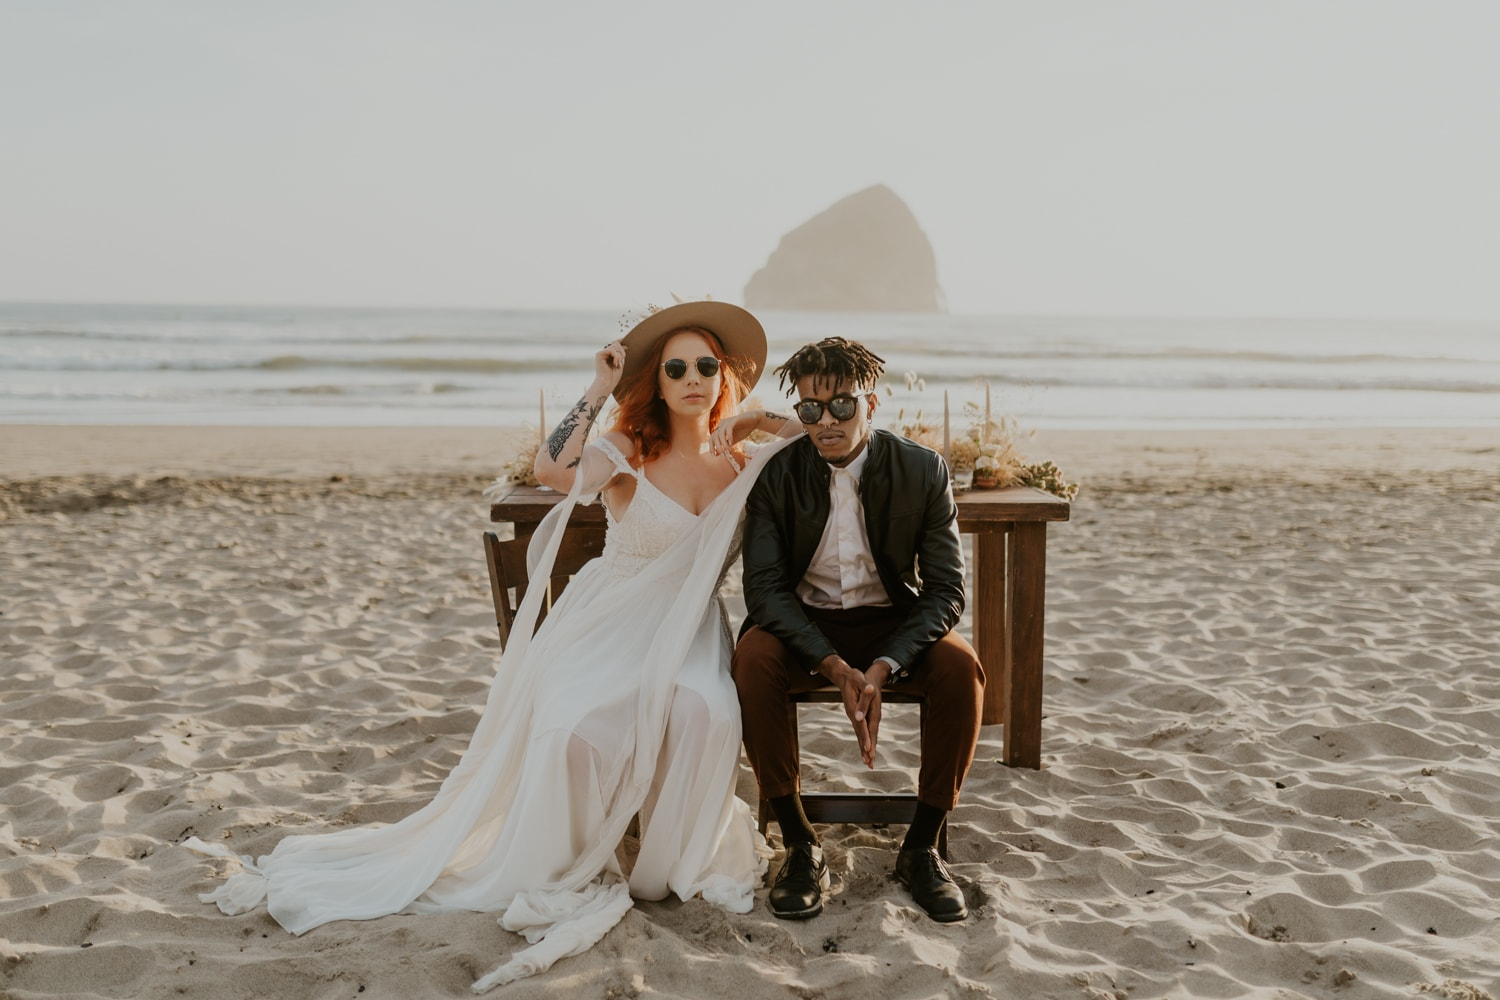 A couple eloping on the beach in Malibu, California.